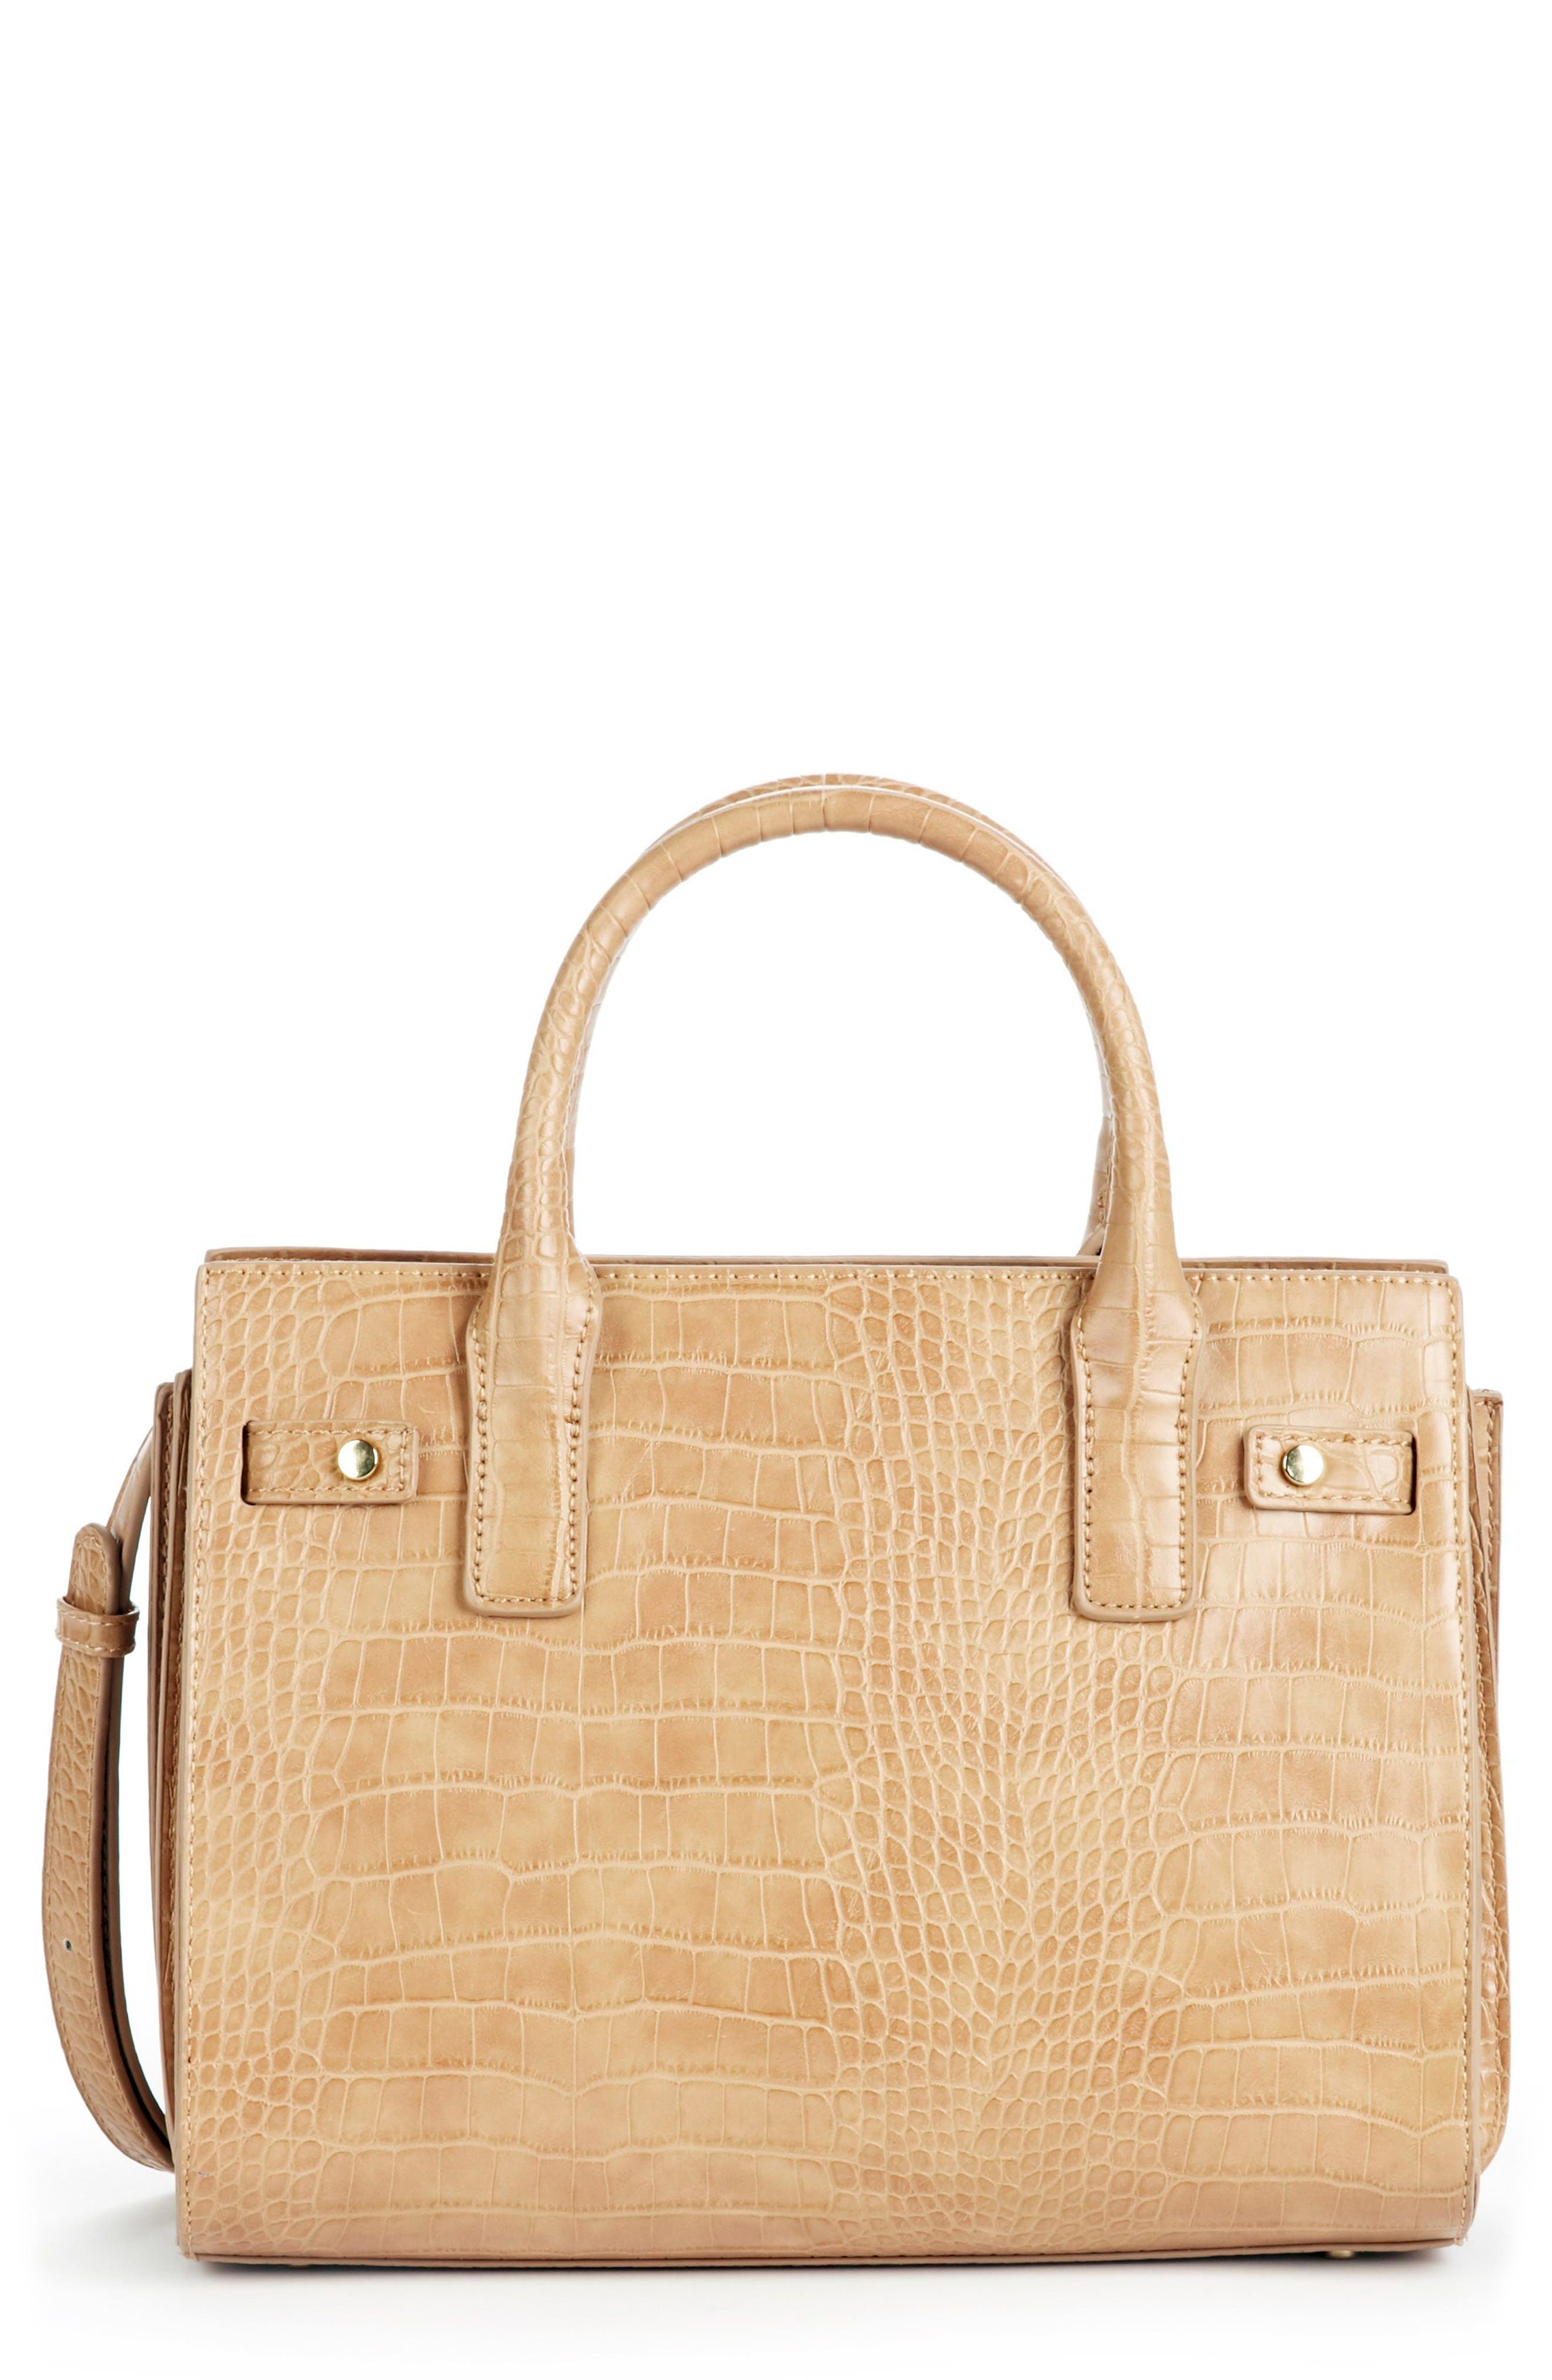 Medium Estella Faux Leather Satchel,                             Main thumbnail 1, color,                             CAMEL